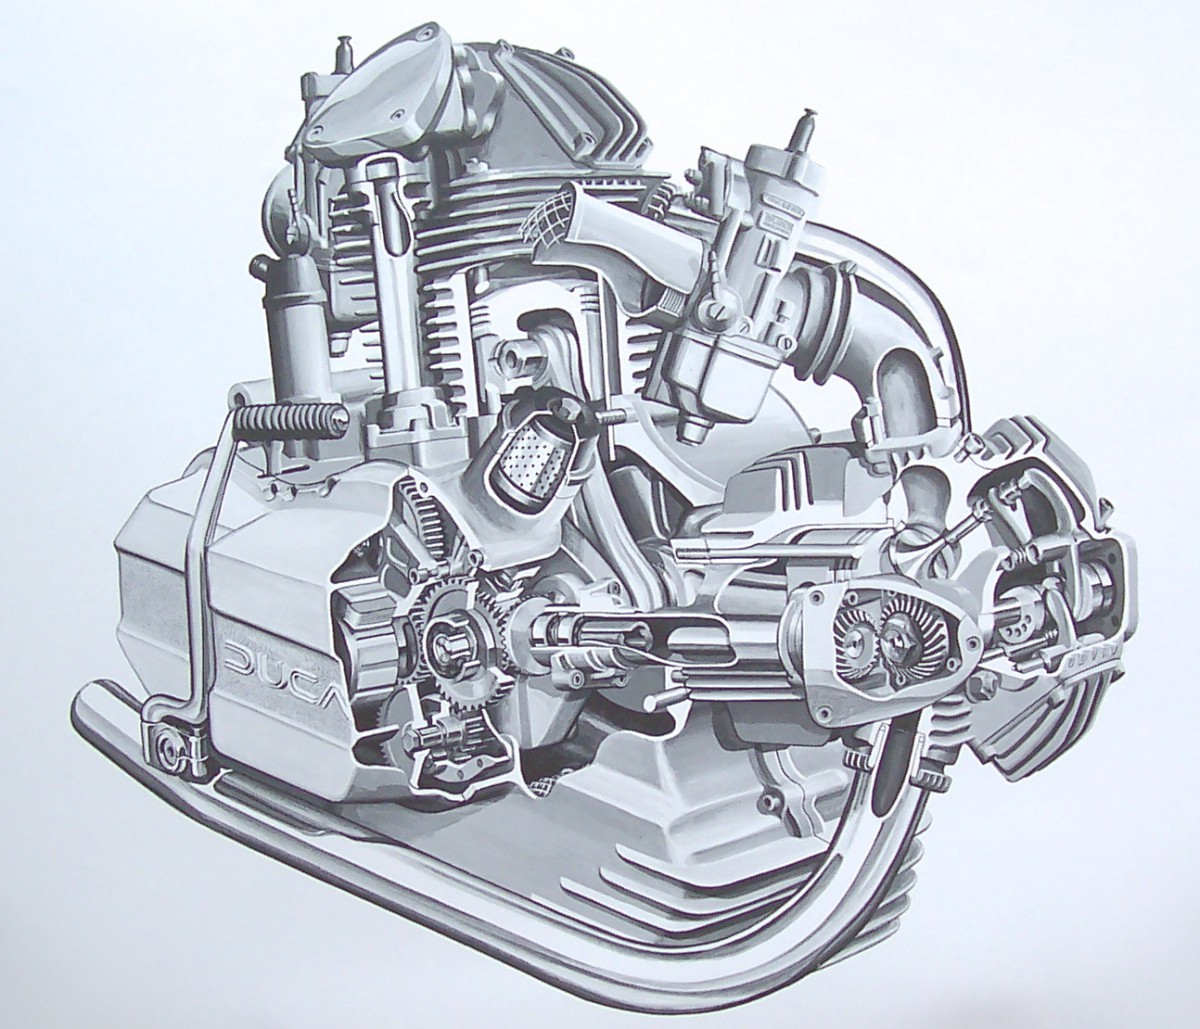 Engine Drawing at GetDrawings.com | Free for personal use Engine ...